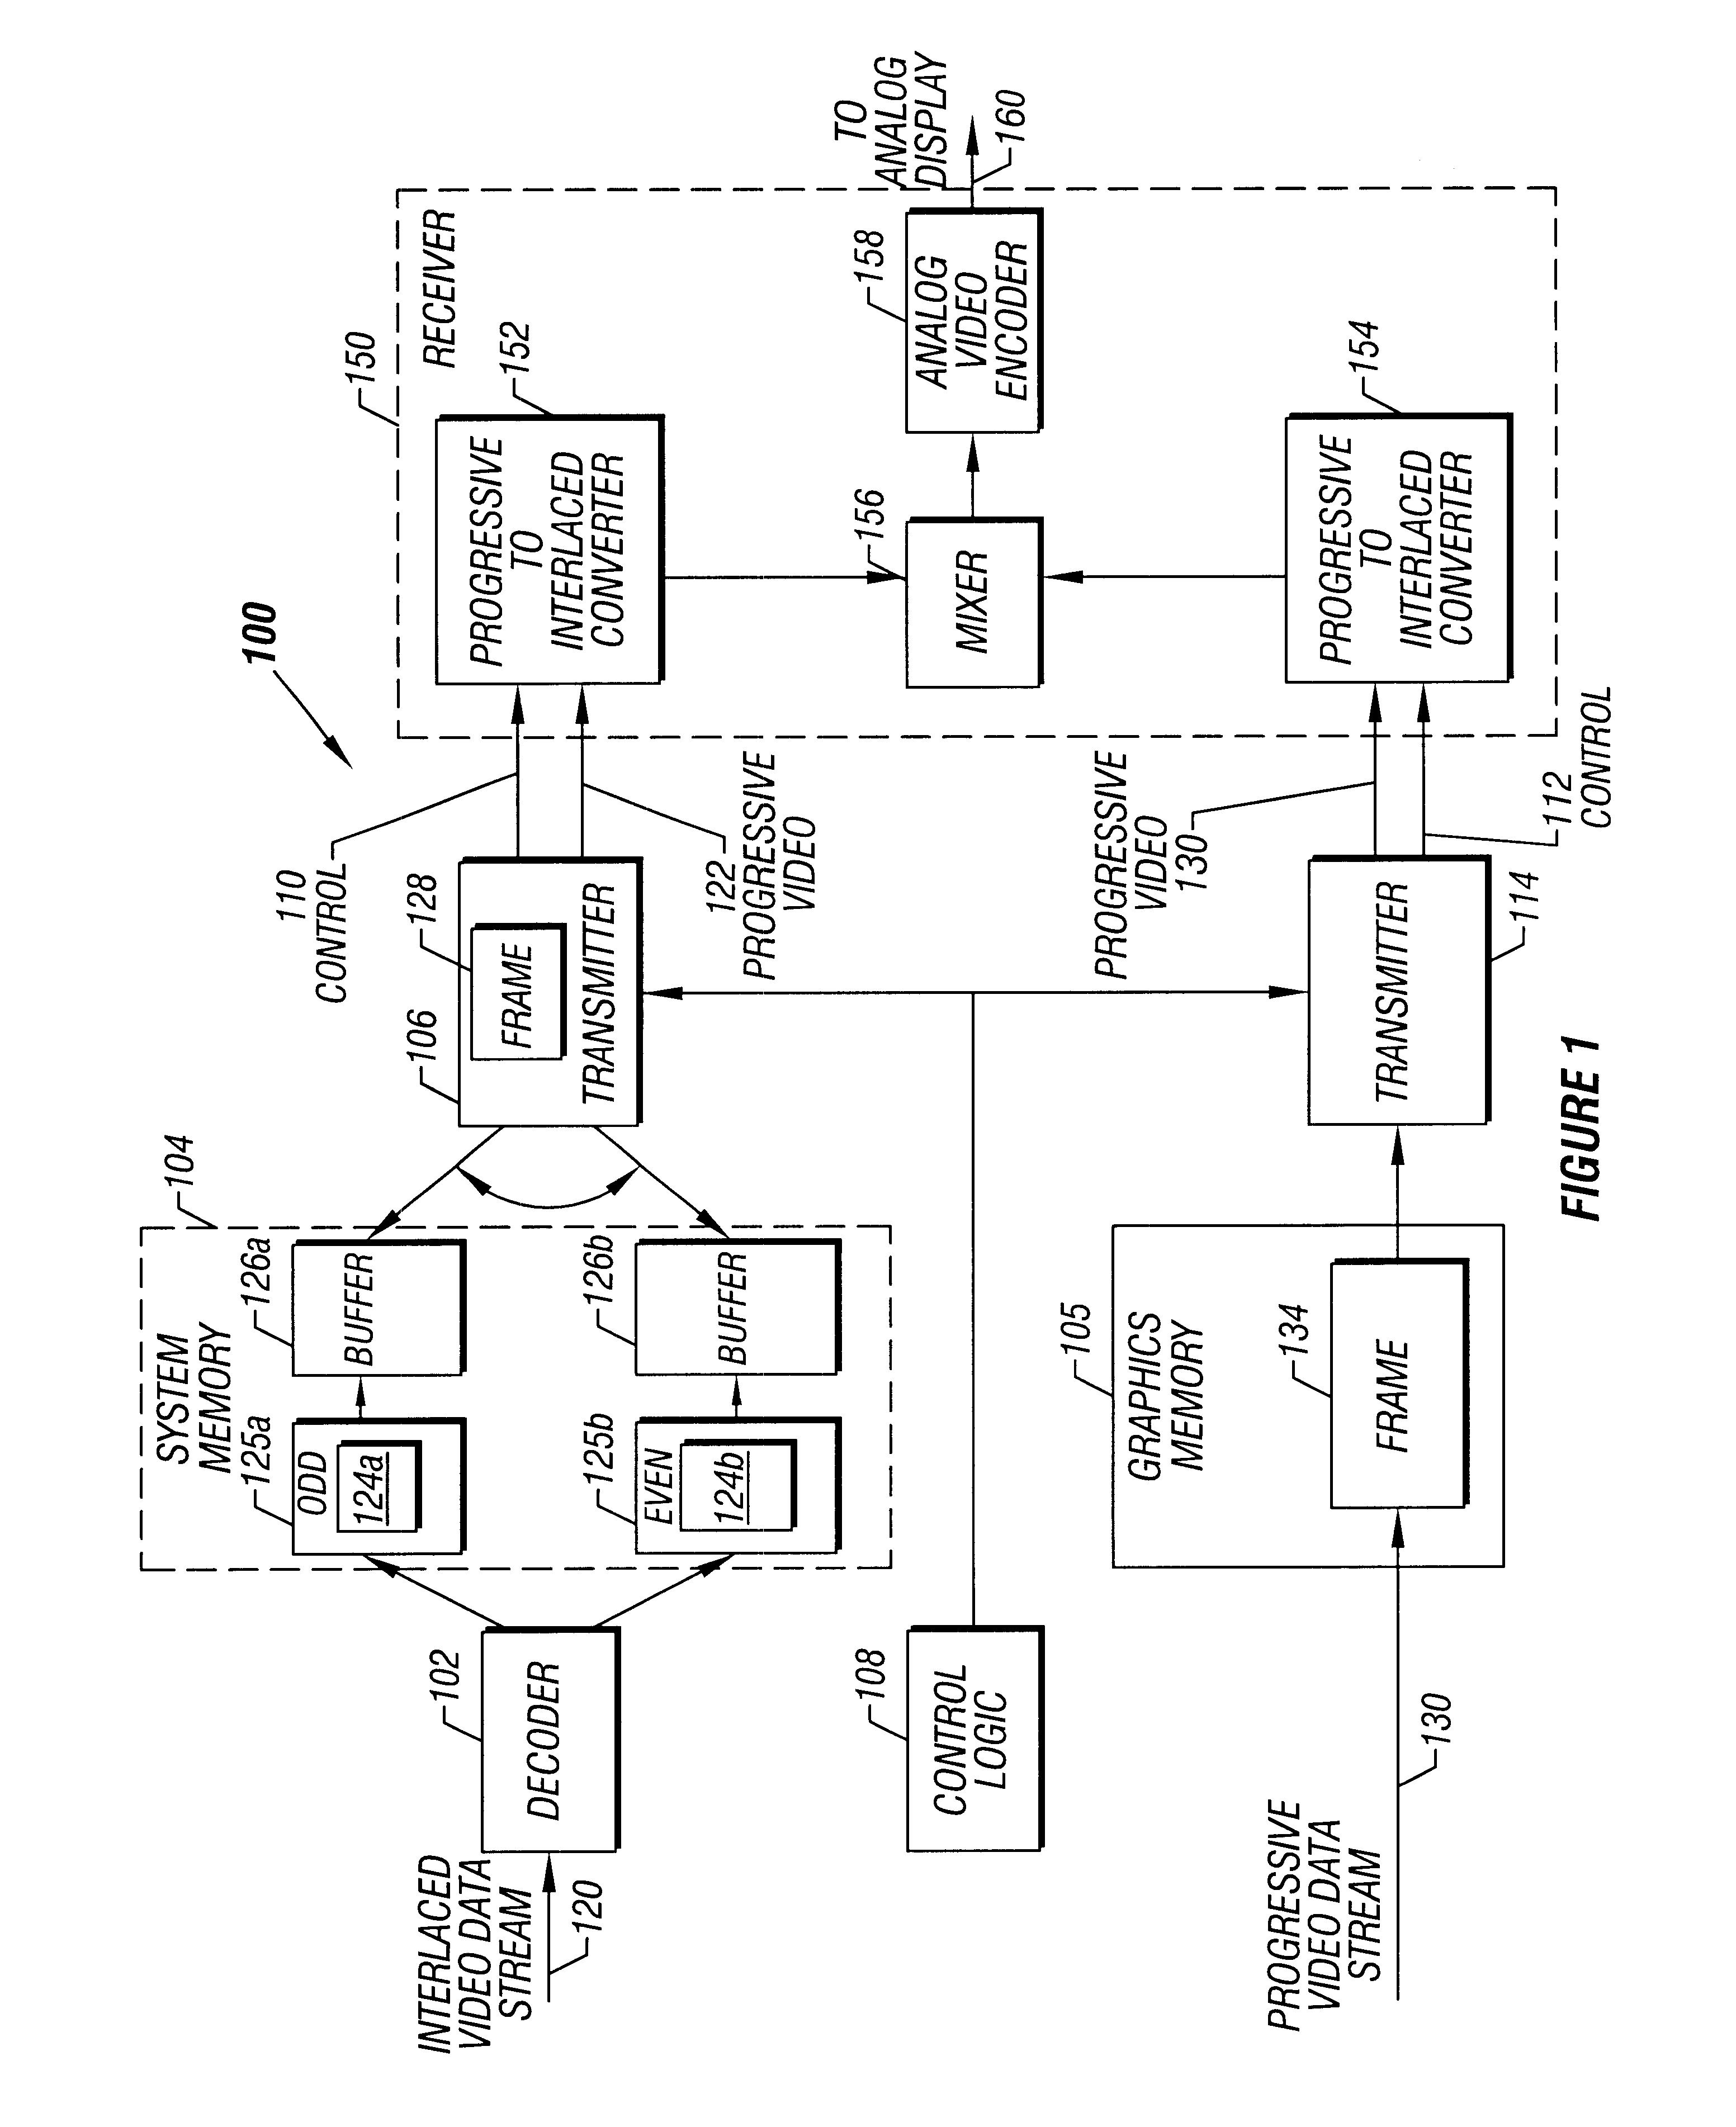 Us6392712 Synchronizing Interlaced And Progressive Transmitter Block Diagram For Pal System Images Patent Drawing